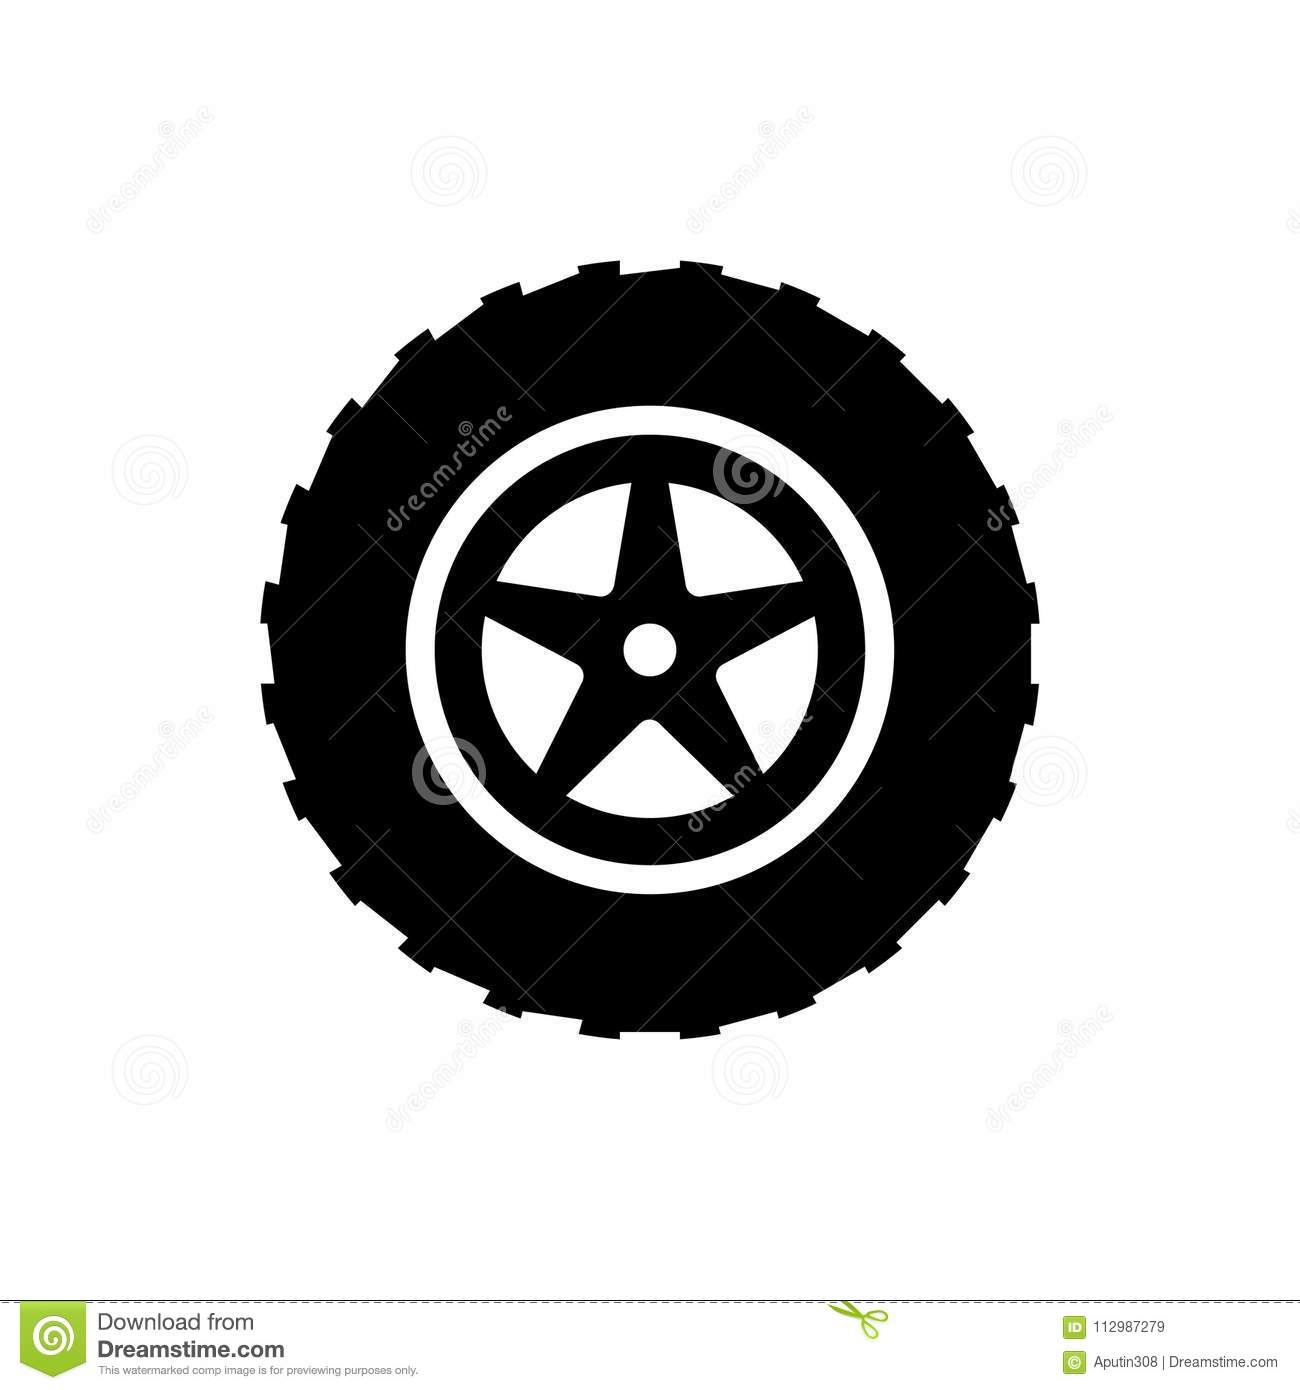 Big wheel web icon vector. black isolated